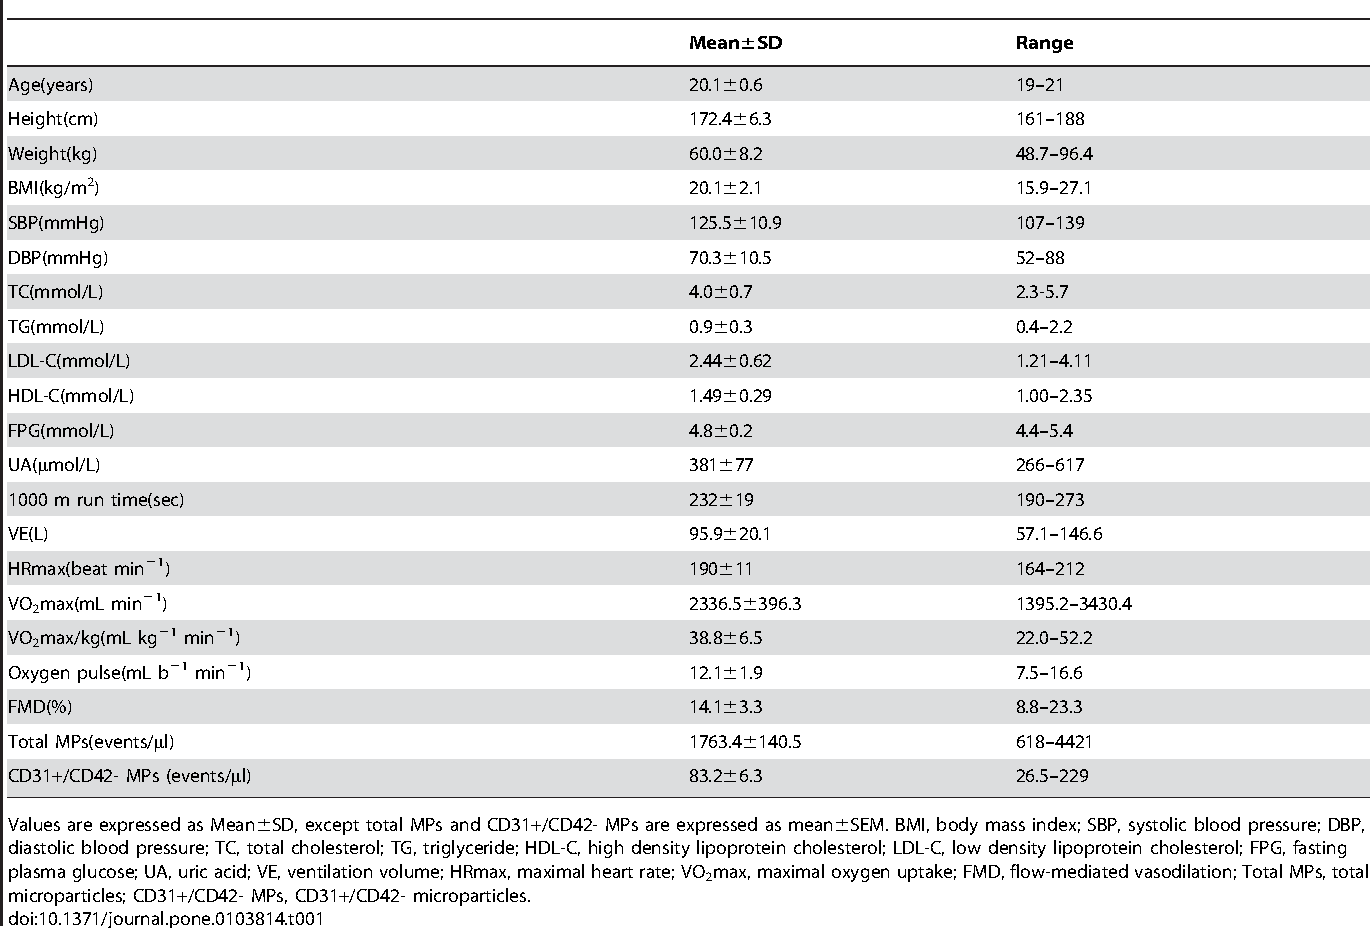 Table 1. Physiological characteristics of the subjects (N = 47).